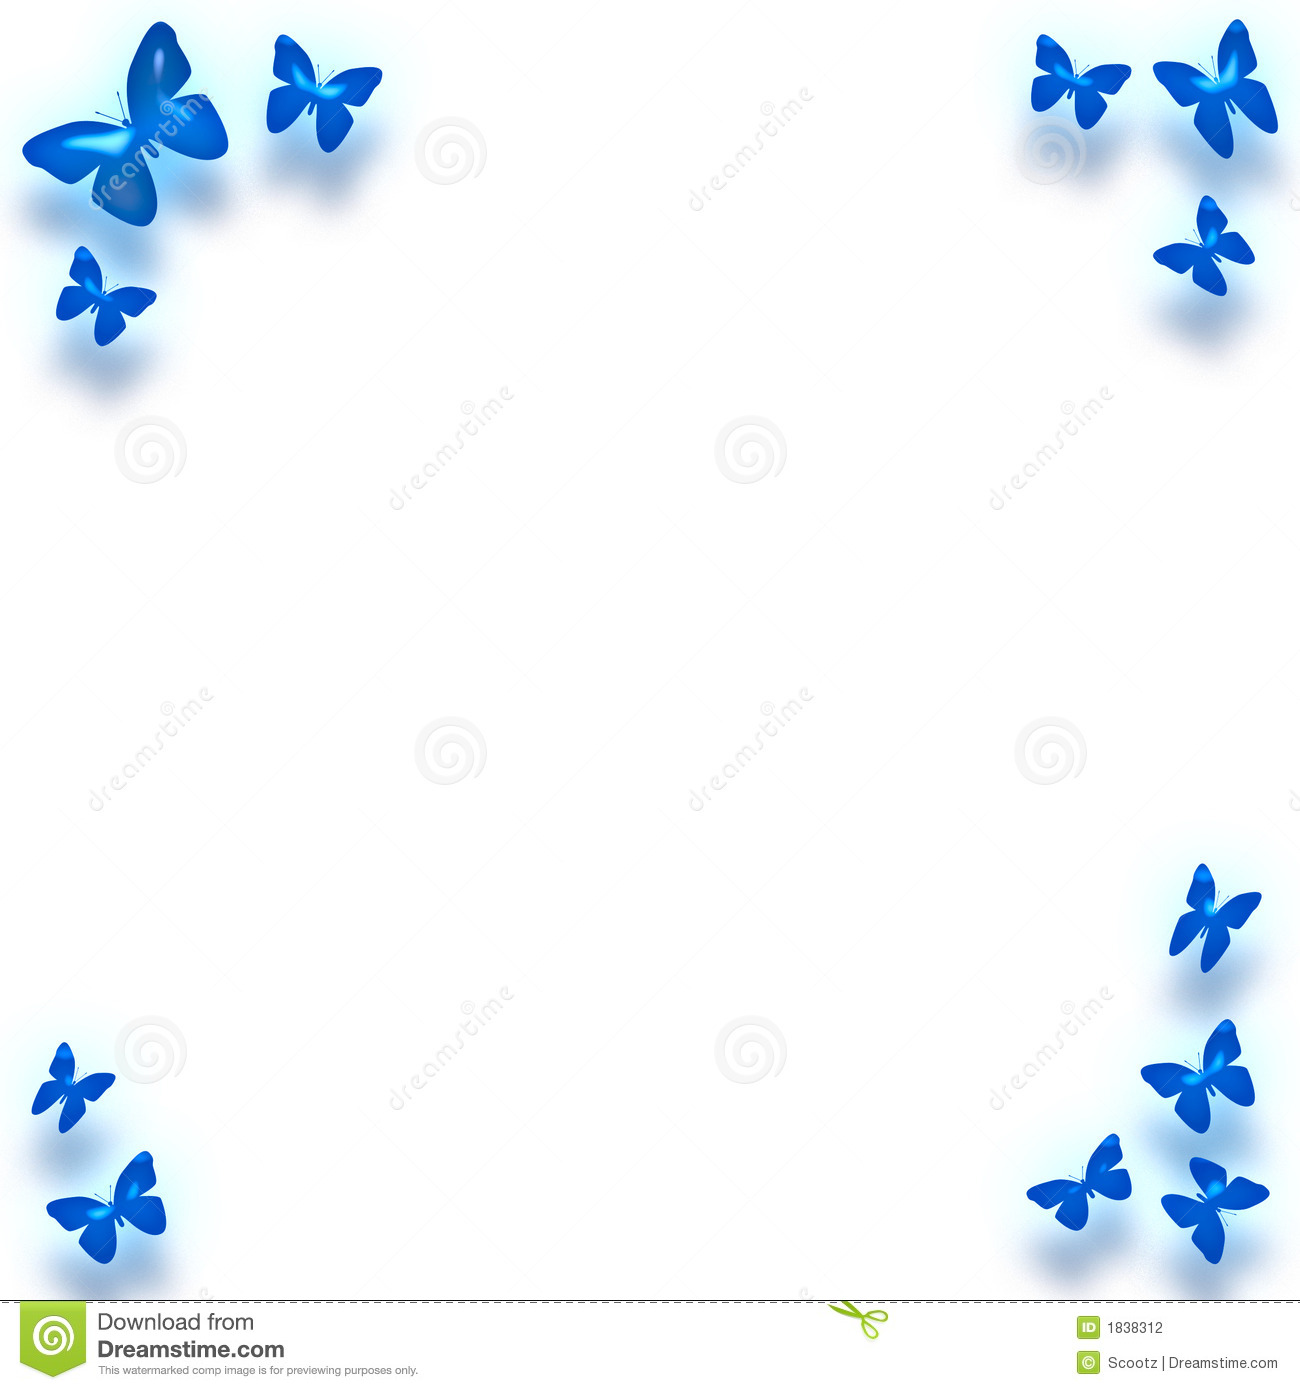 Blue butterfly border around note paper background,stationary,card.